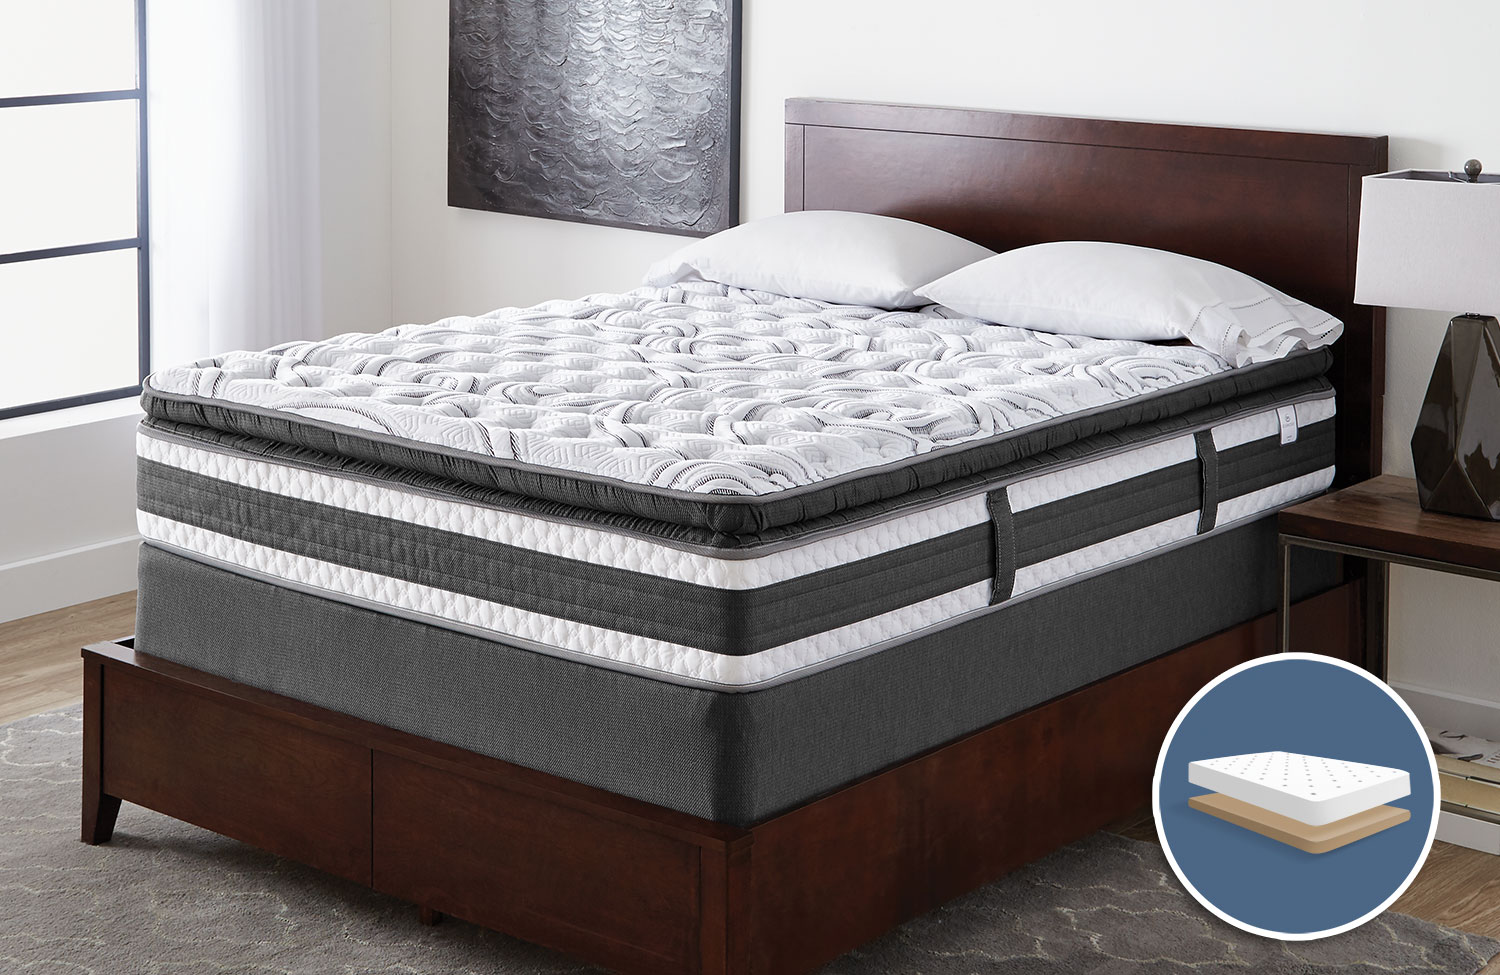 Mattresses and Bedding - Serta iCollection Lynncroft Pillow-Top Firm Low-Profile Queen Mattress Set